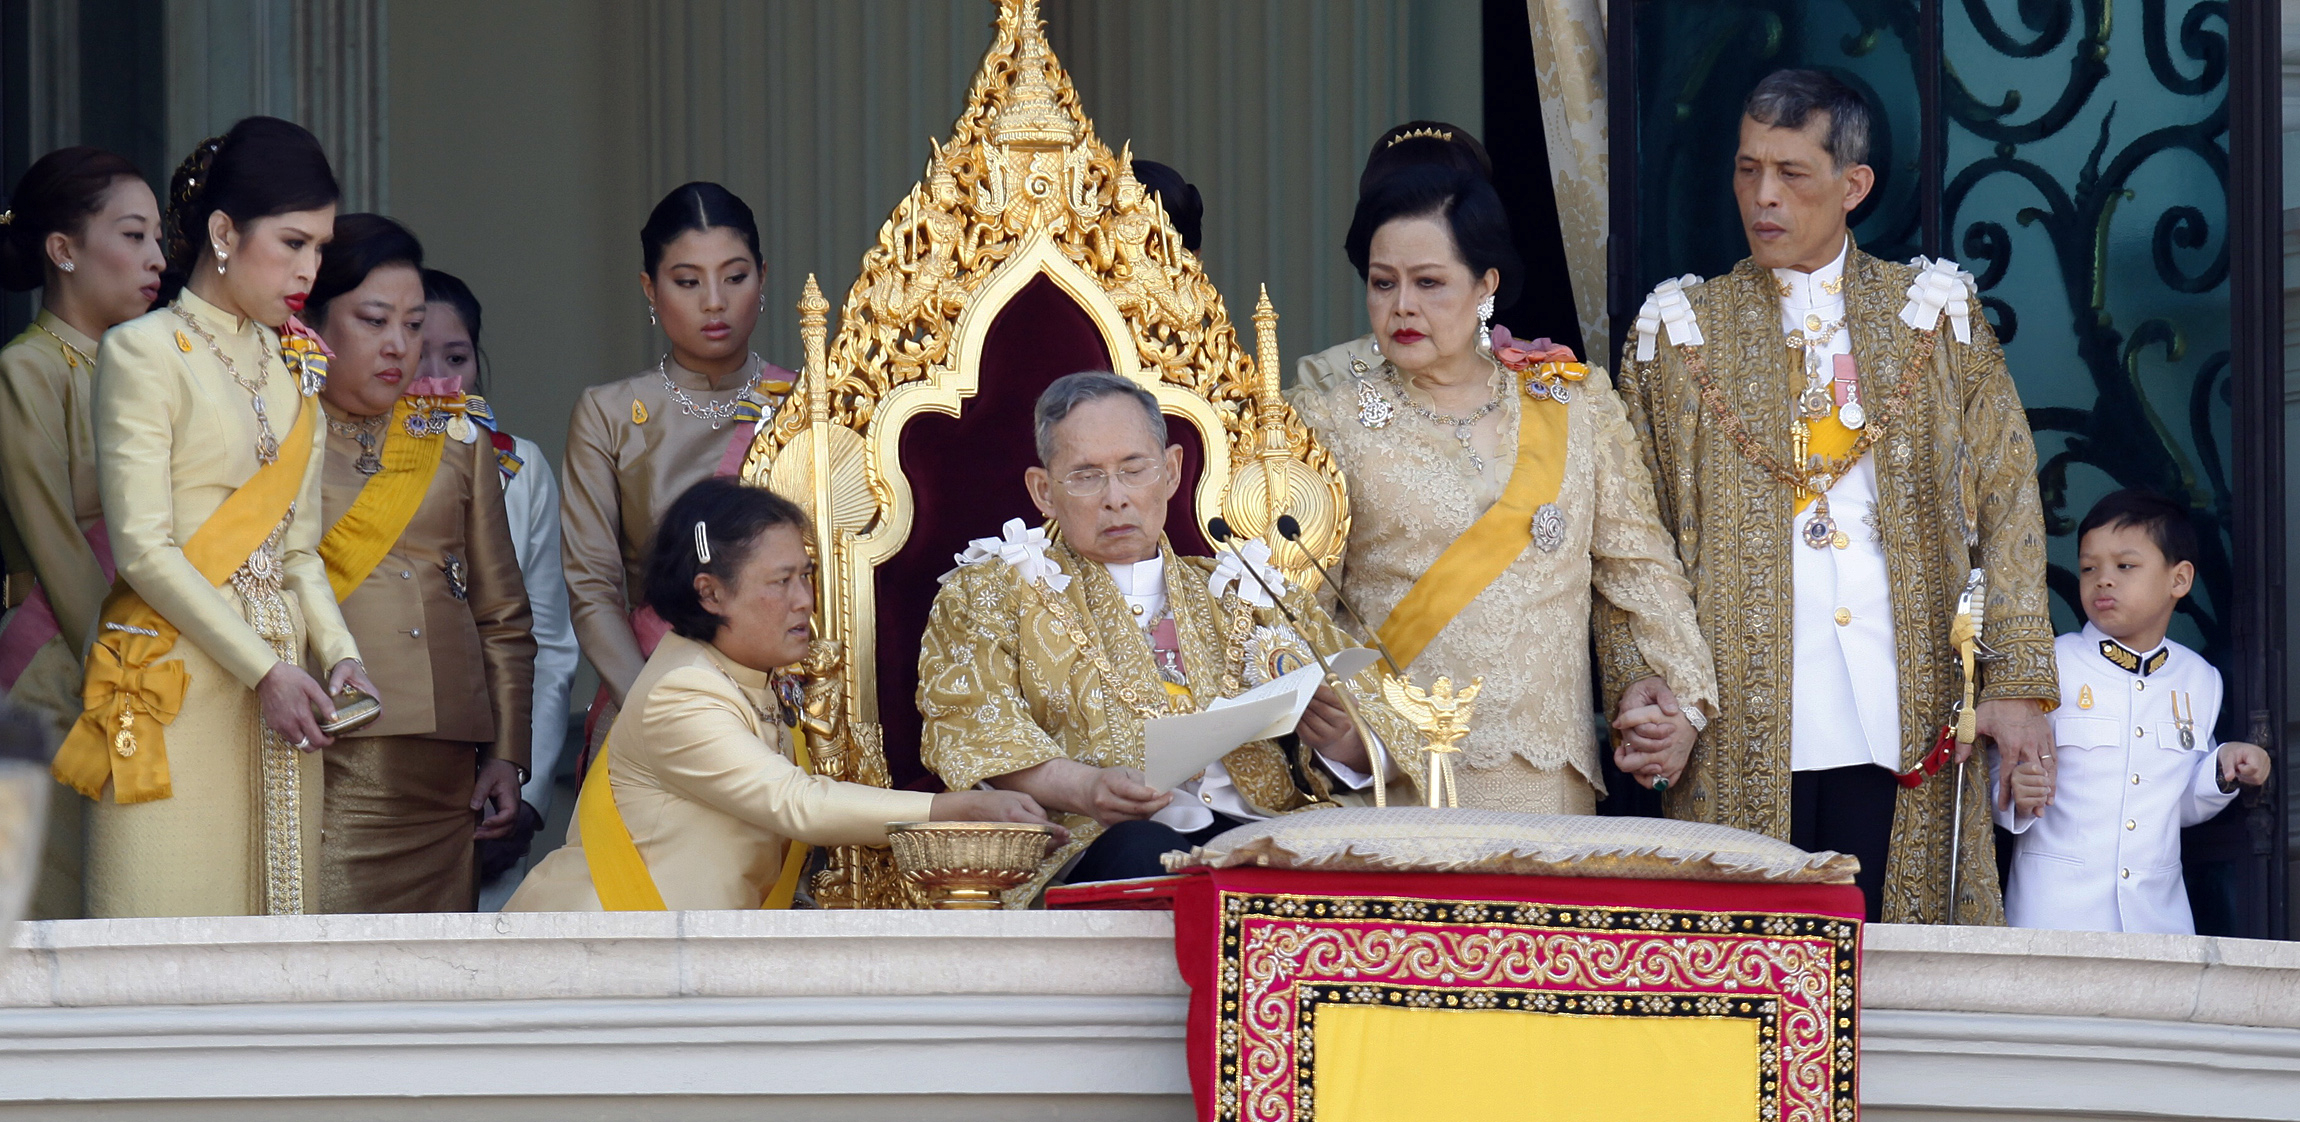 Bhumibol and family